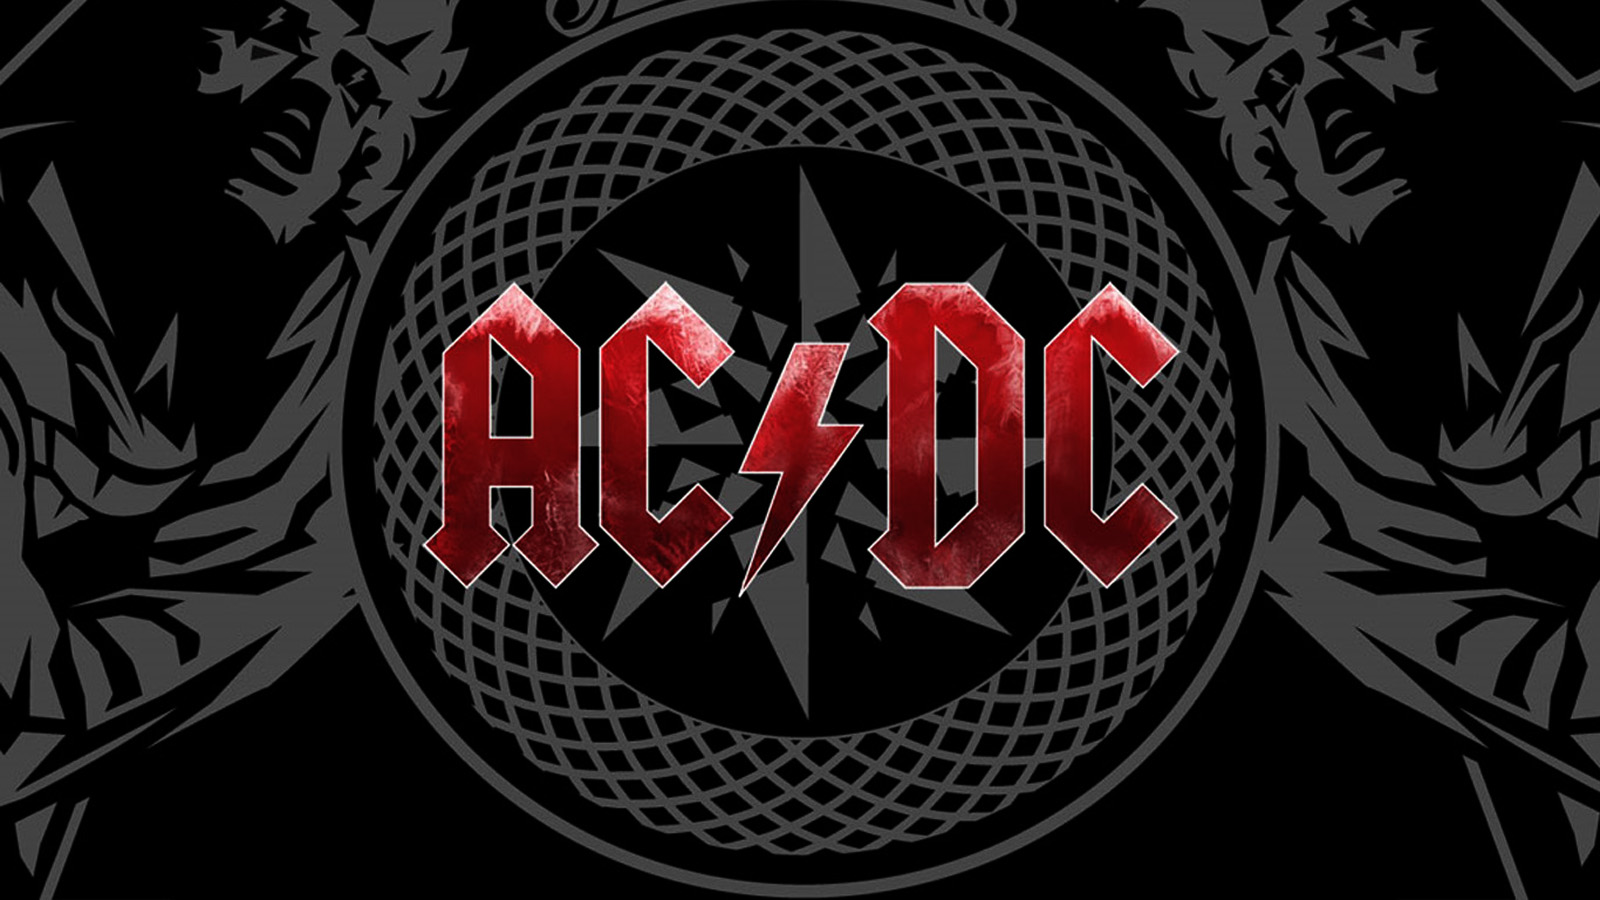 central wallpaper ac dc music band hd wallpapers album covers. Black Bedroom Furniture Sets. Home Design Ideas